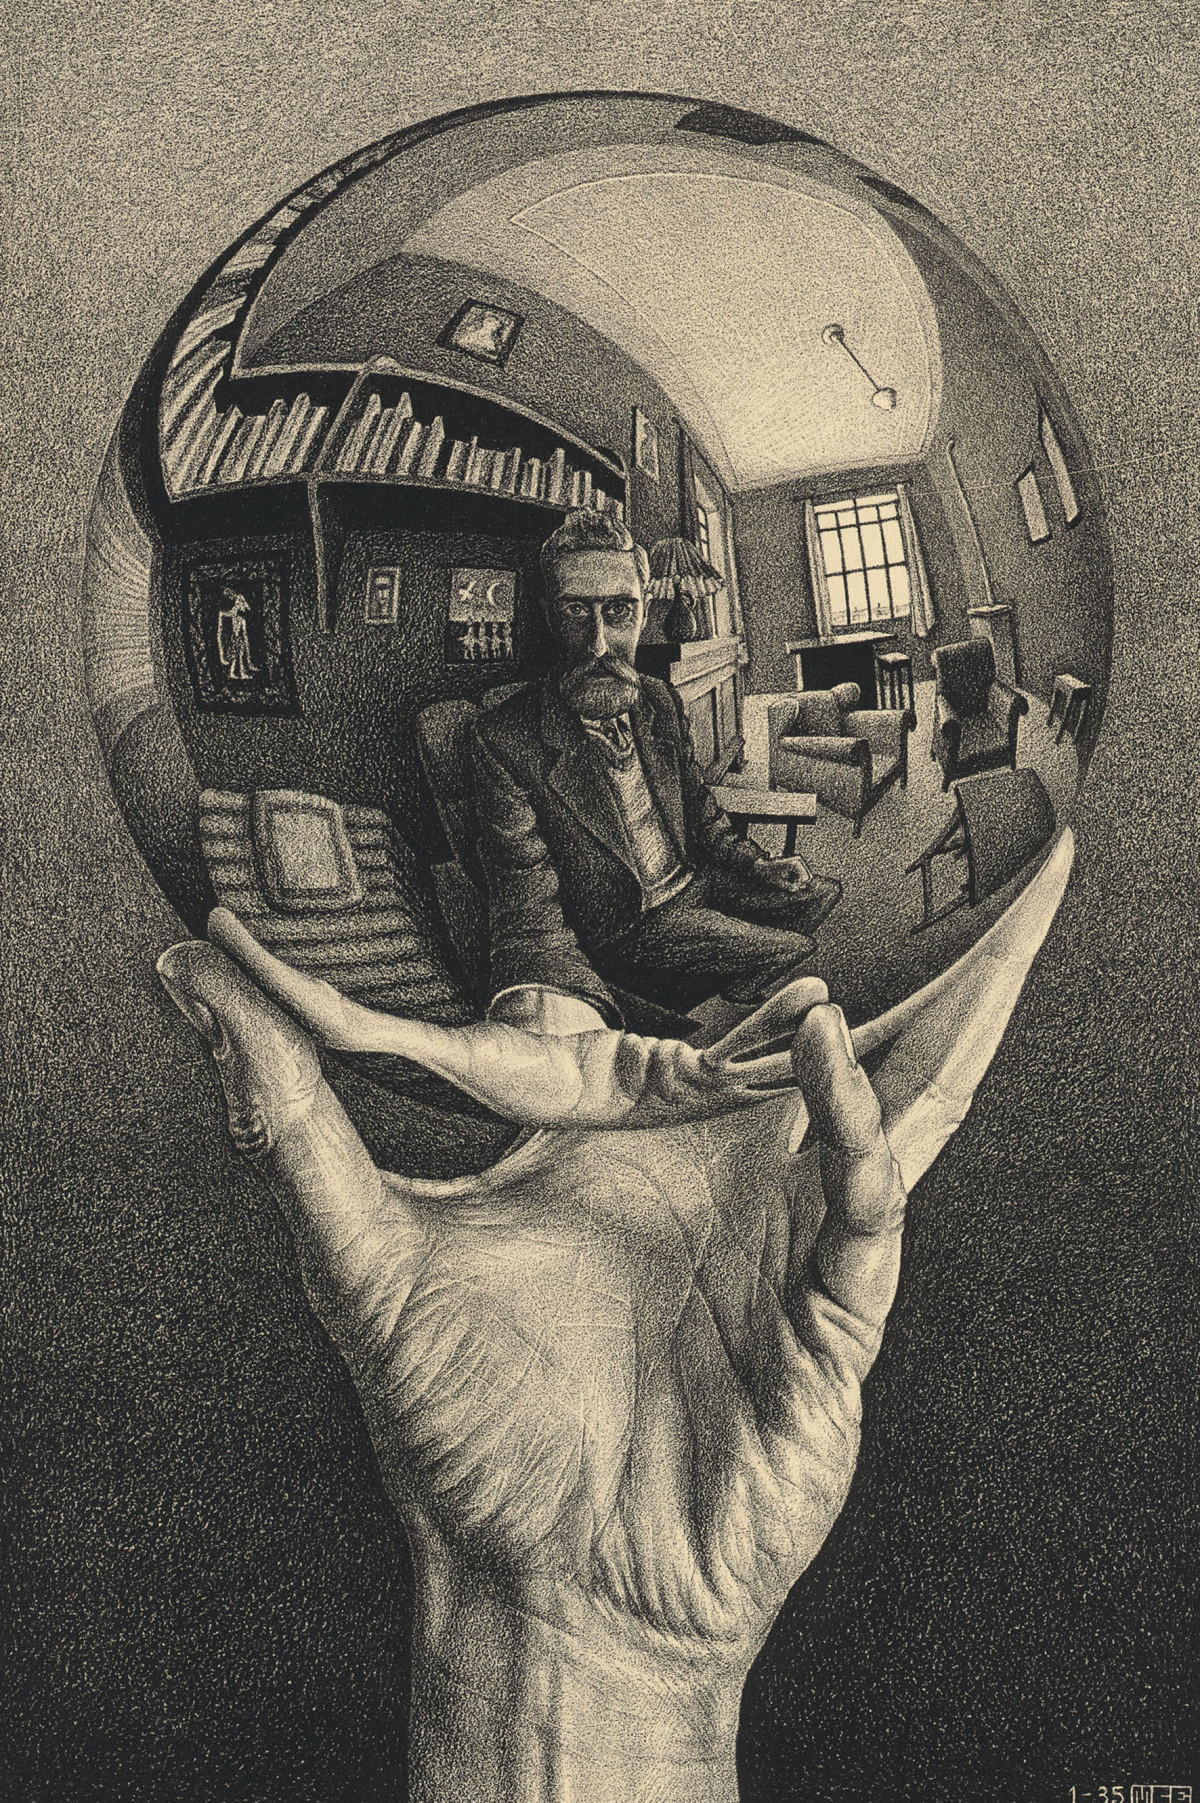 06-07-2019 for self-inquiry escher_hand-with-a-reflecting-sphere-1935.jpg